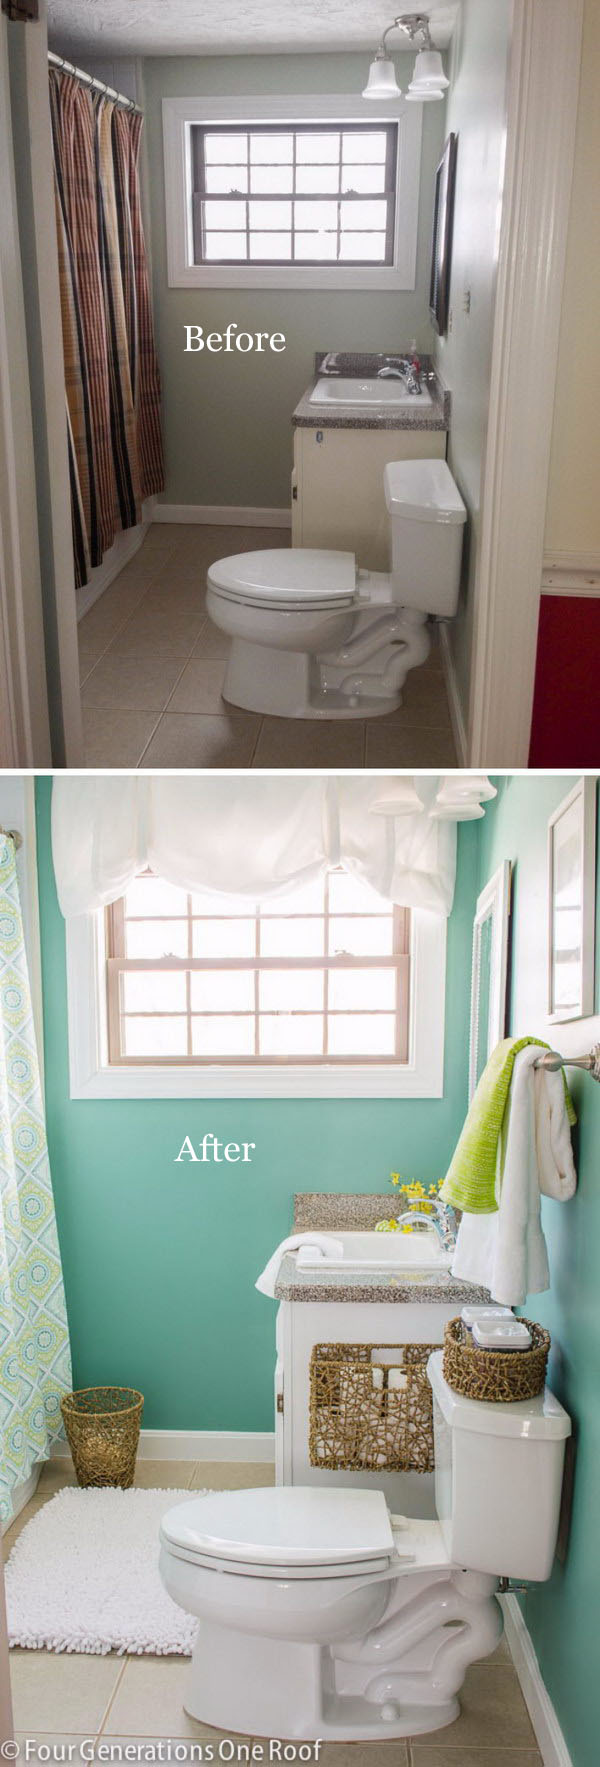 Low Cost Bathroom Makeover From Brown to Green Spa .